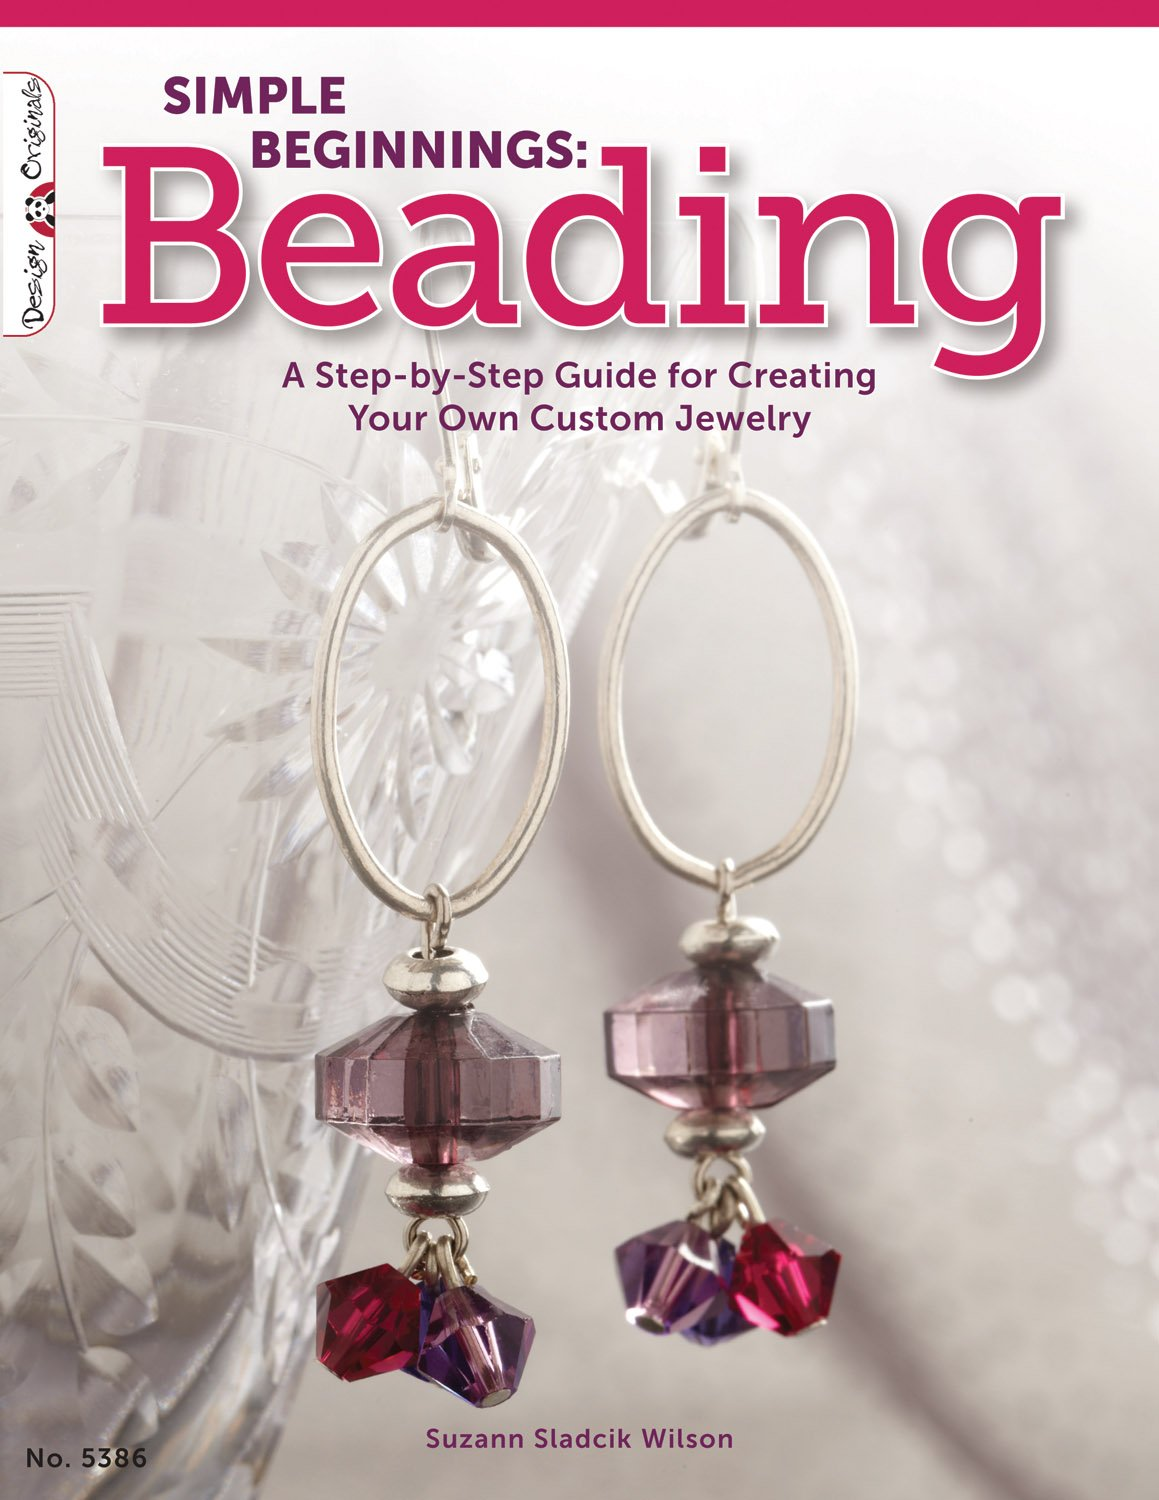 Amazoncom Simple Beginnings Beading A StepbyStep Guide to